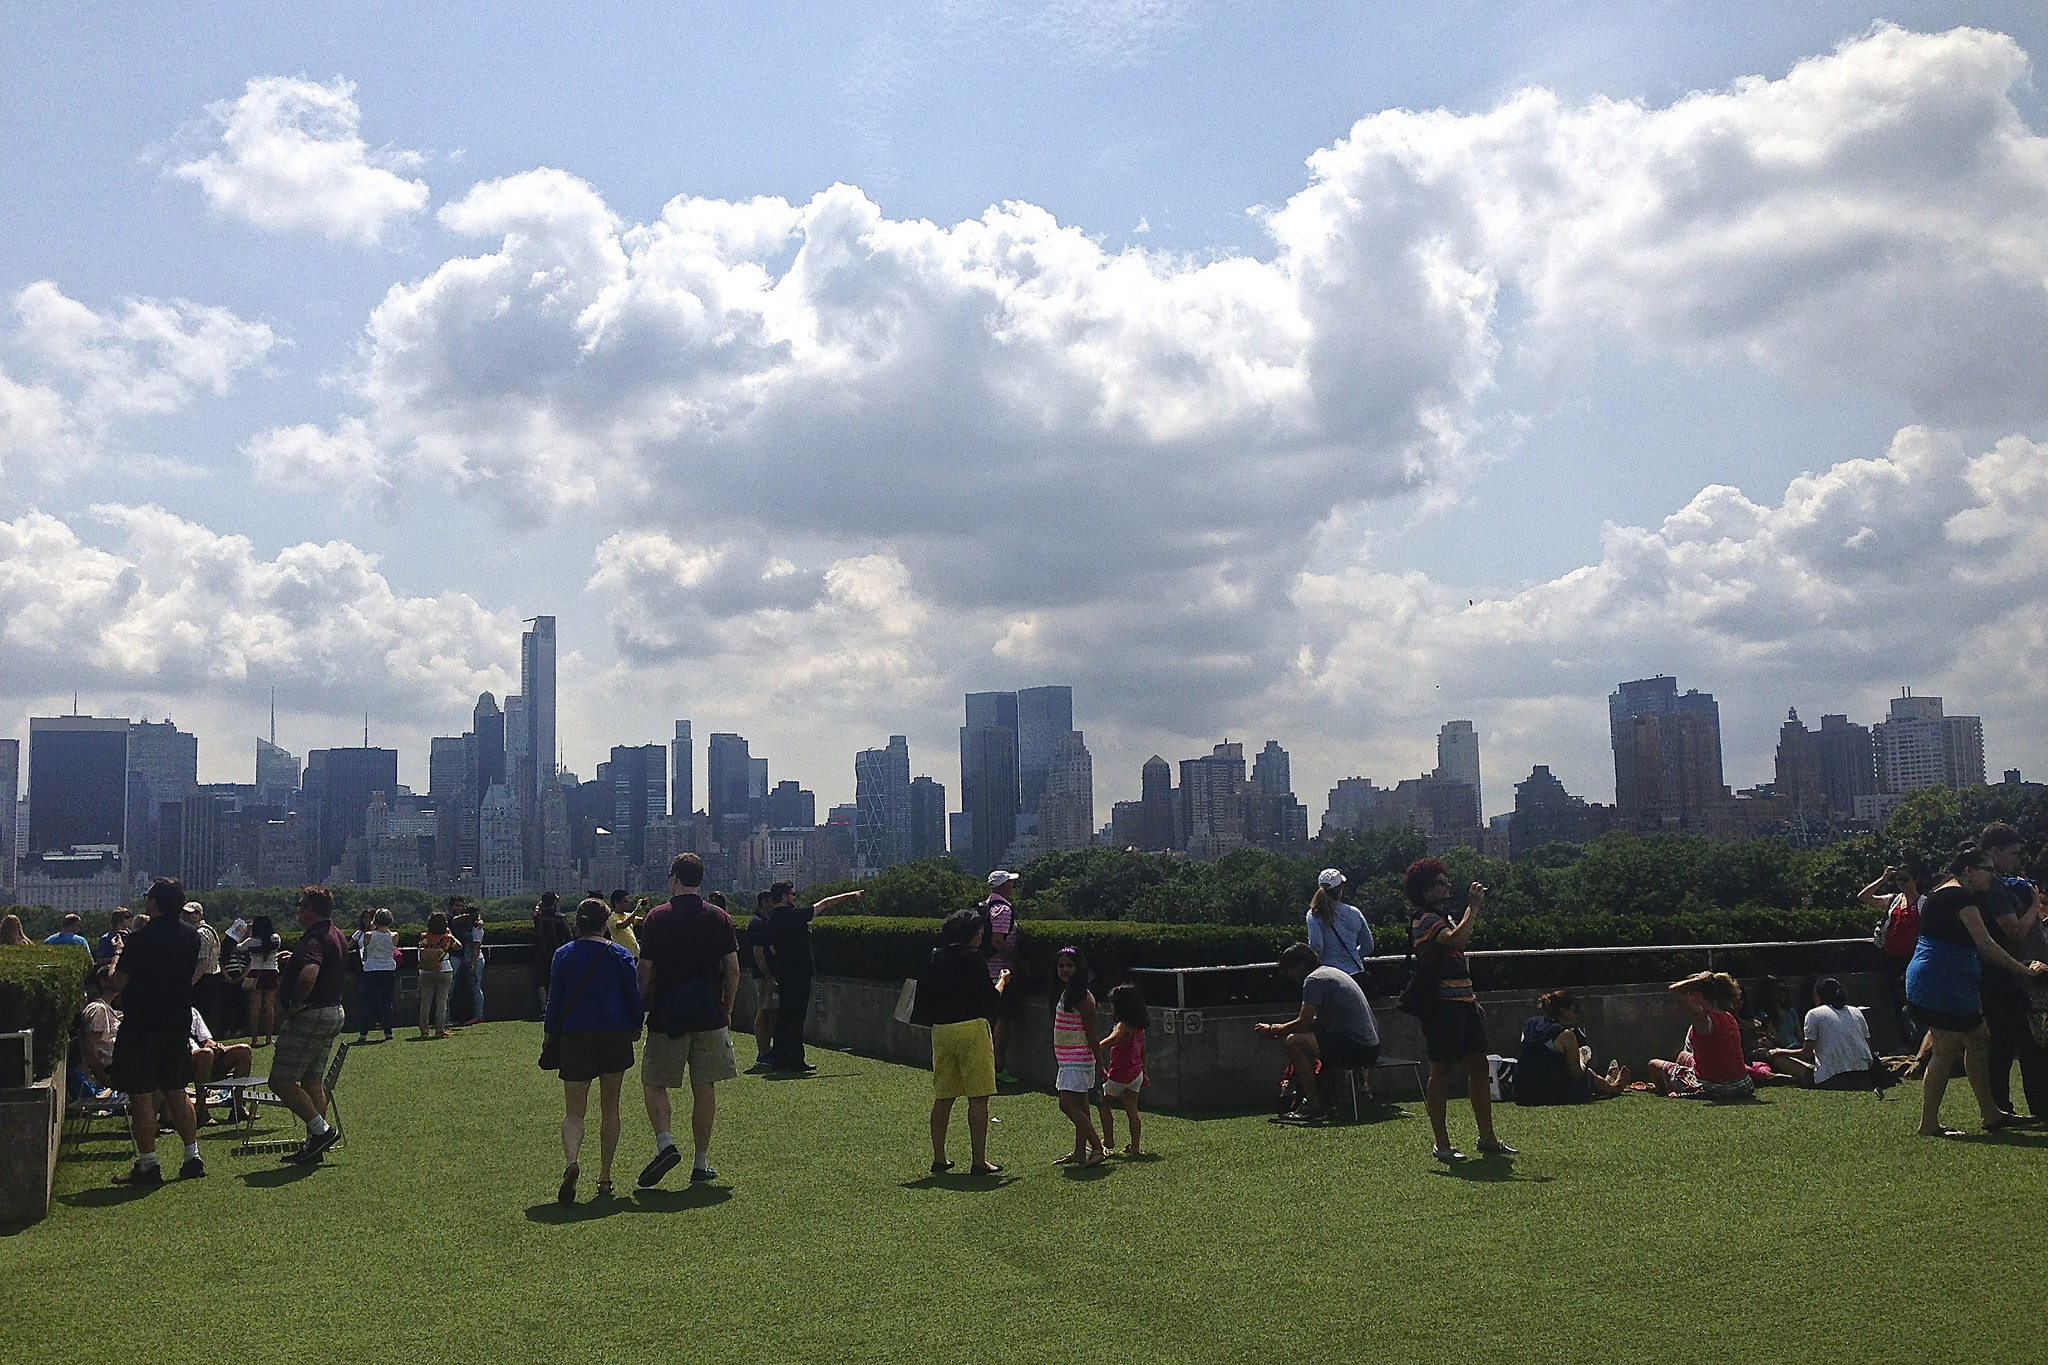 The Met announces its rooftop art commission for 2018